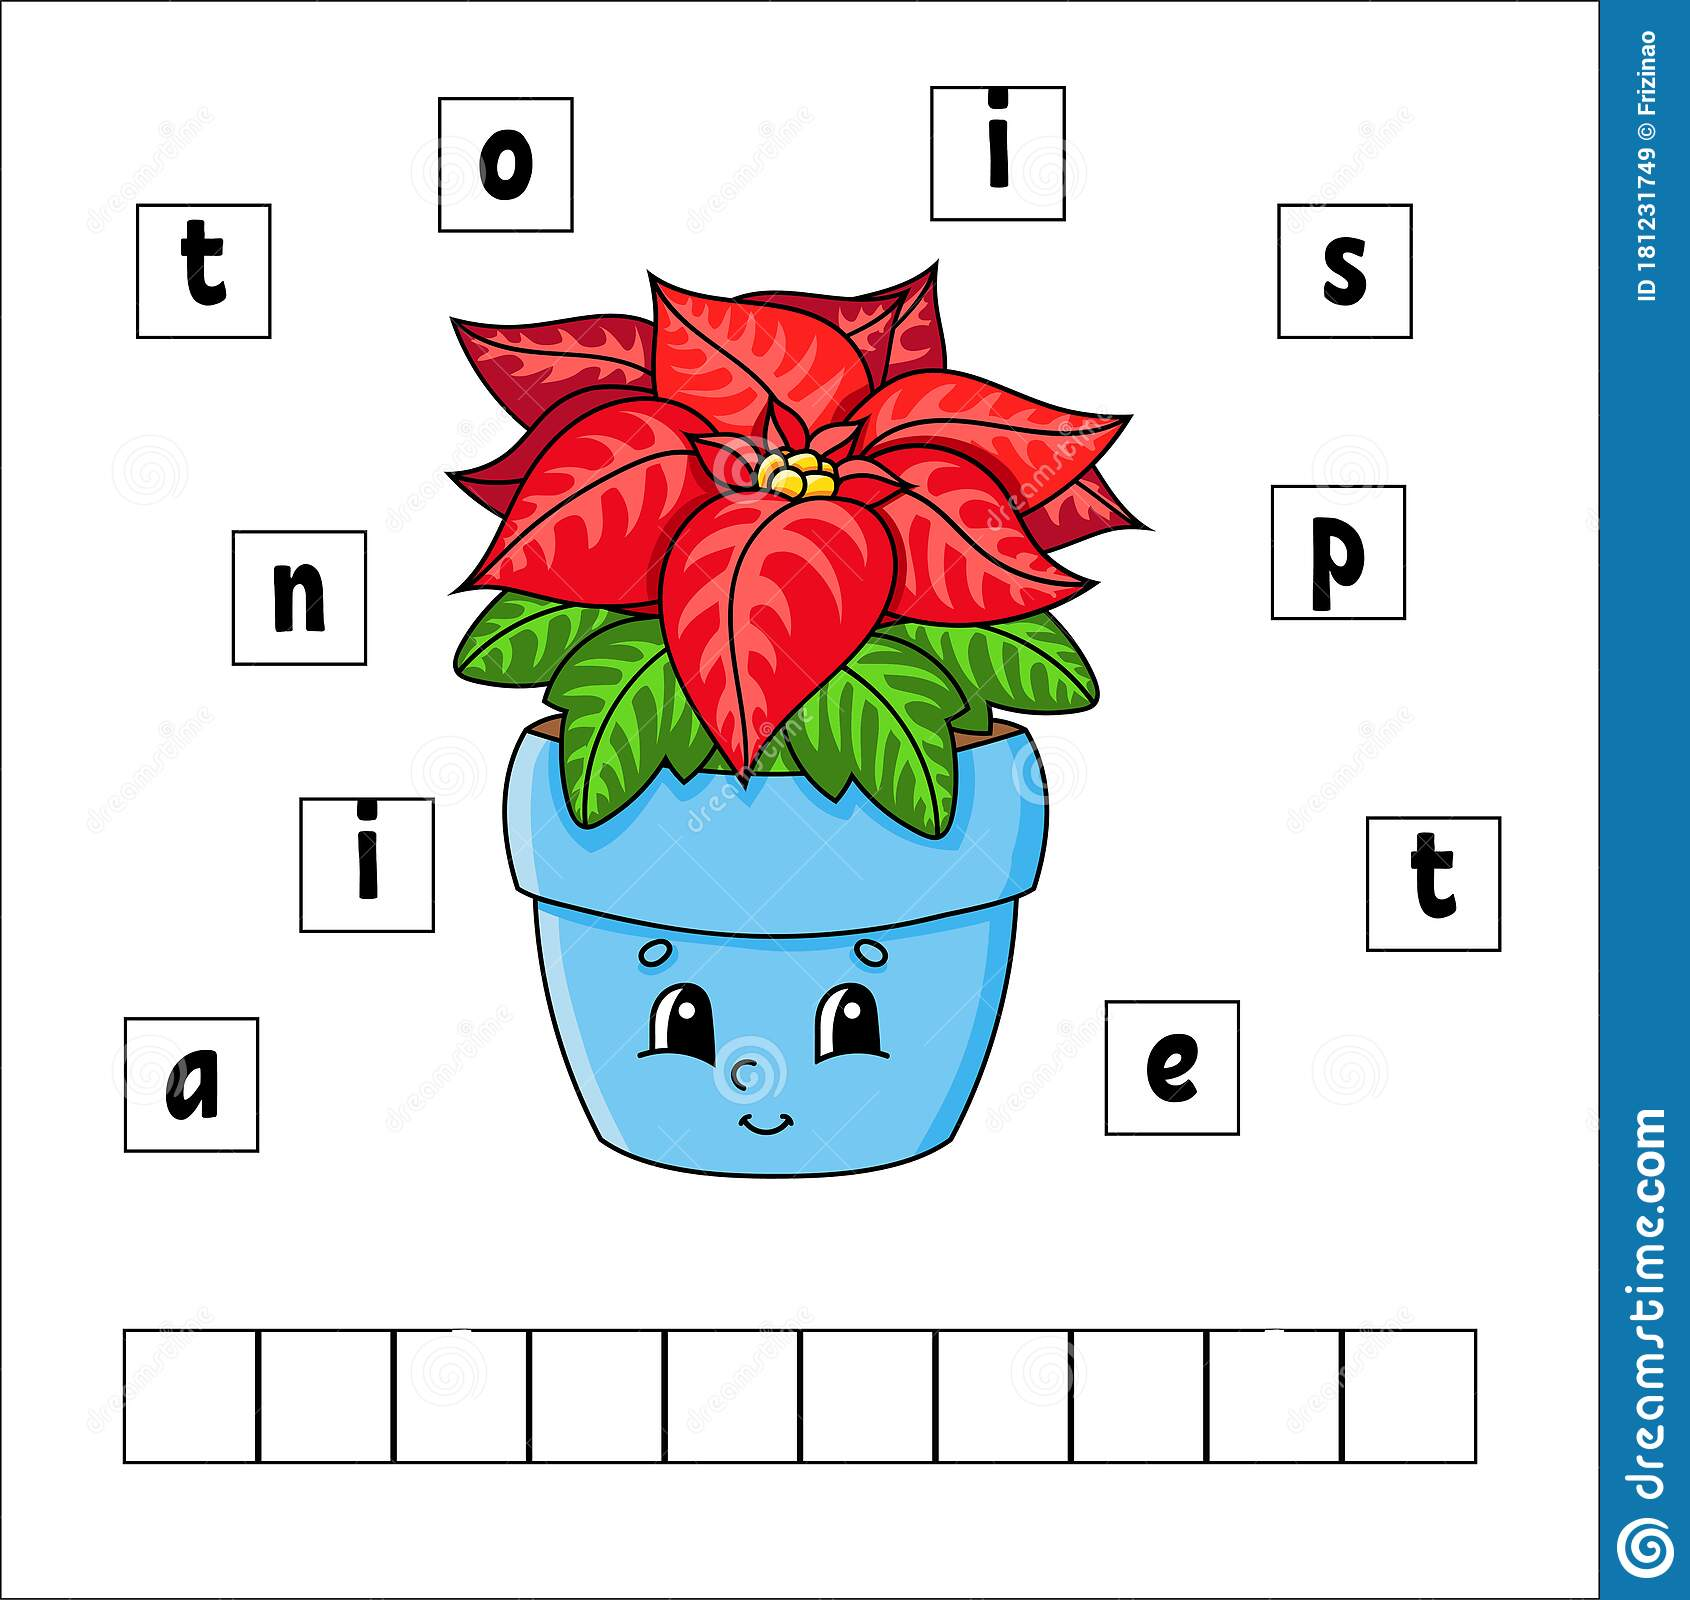 Words Puzzle Poinsettia Education Developing Worksheet